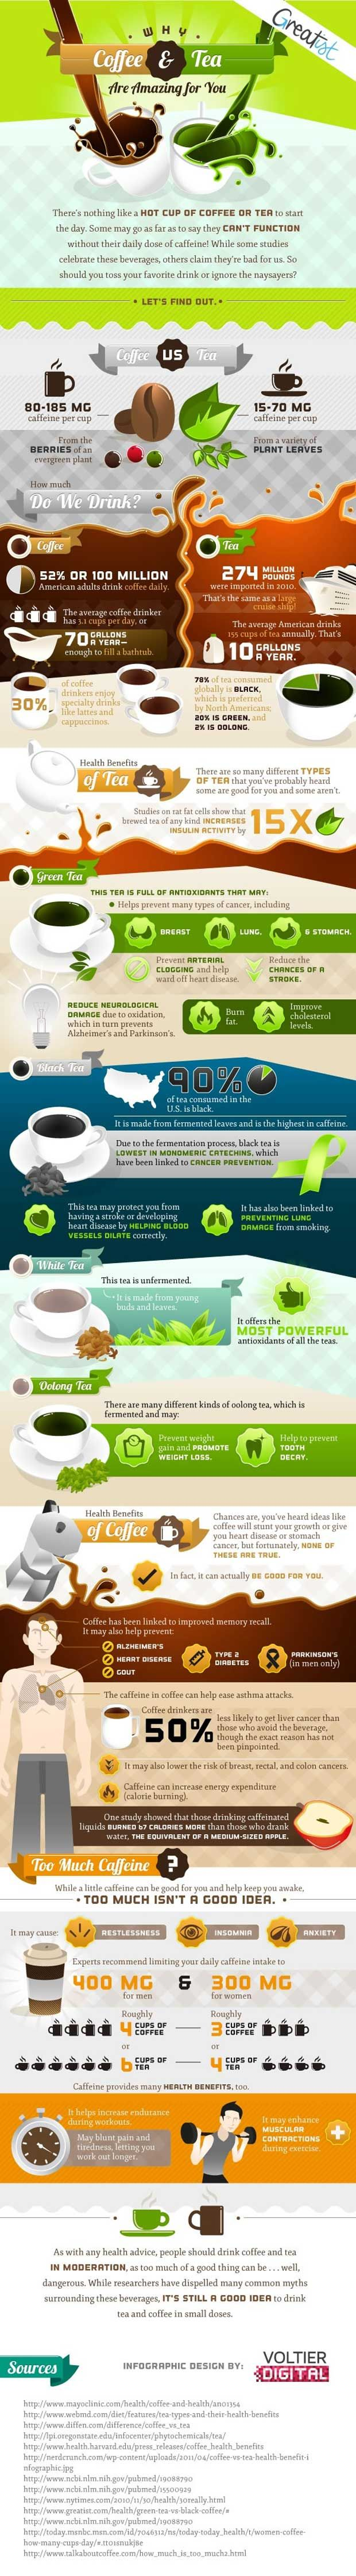 Do you like coffee or tea? Which of the two is your preferred beverage? Or do you like both, coffee and tea! This infographic explains it all. :)